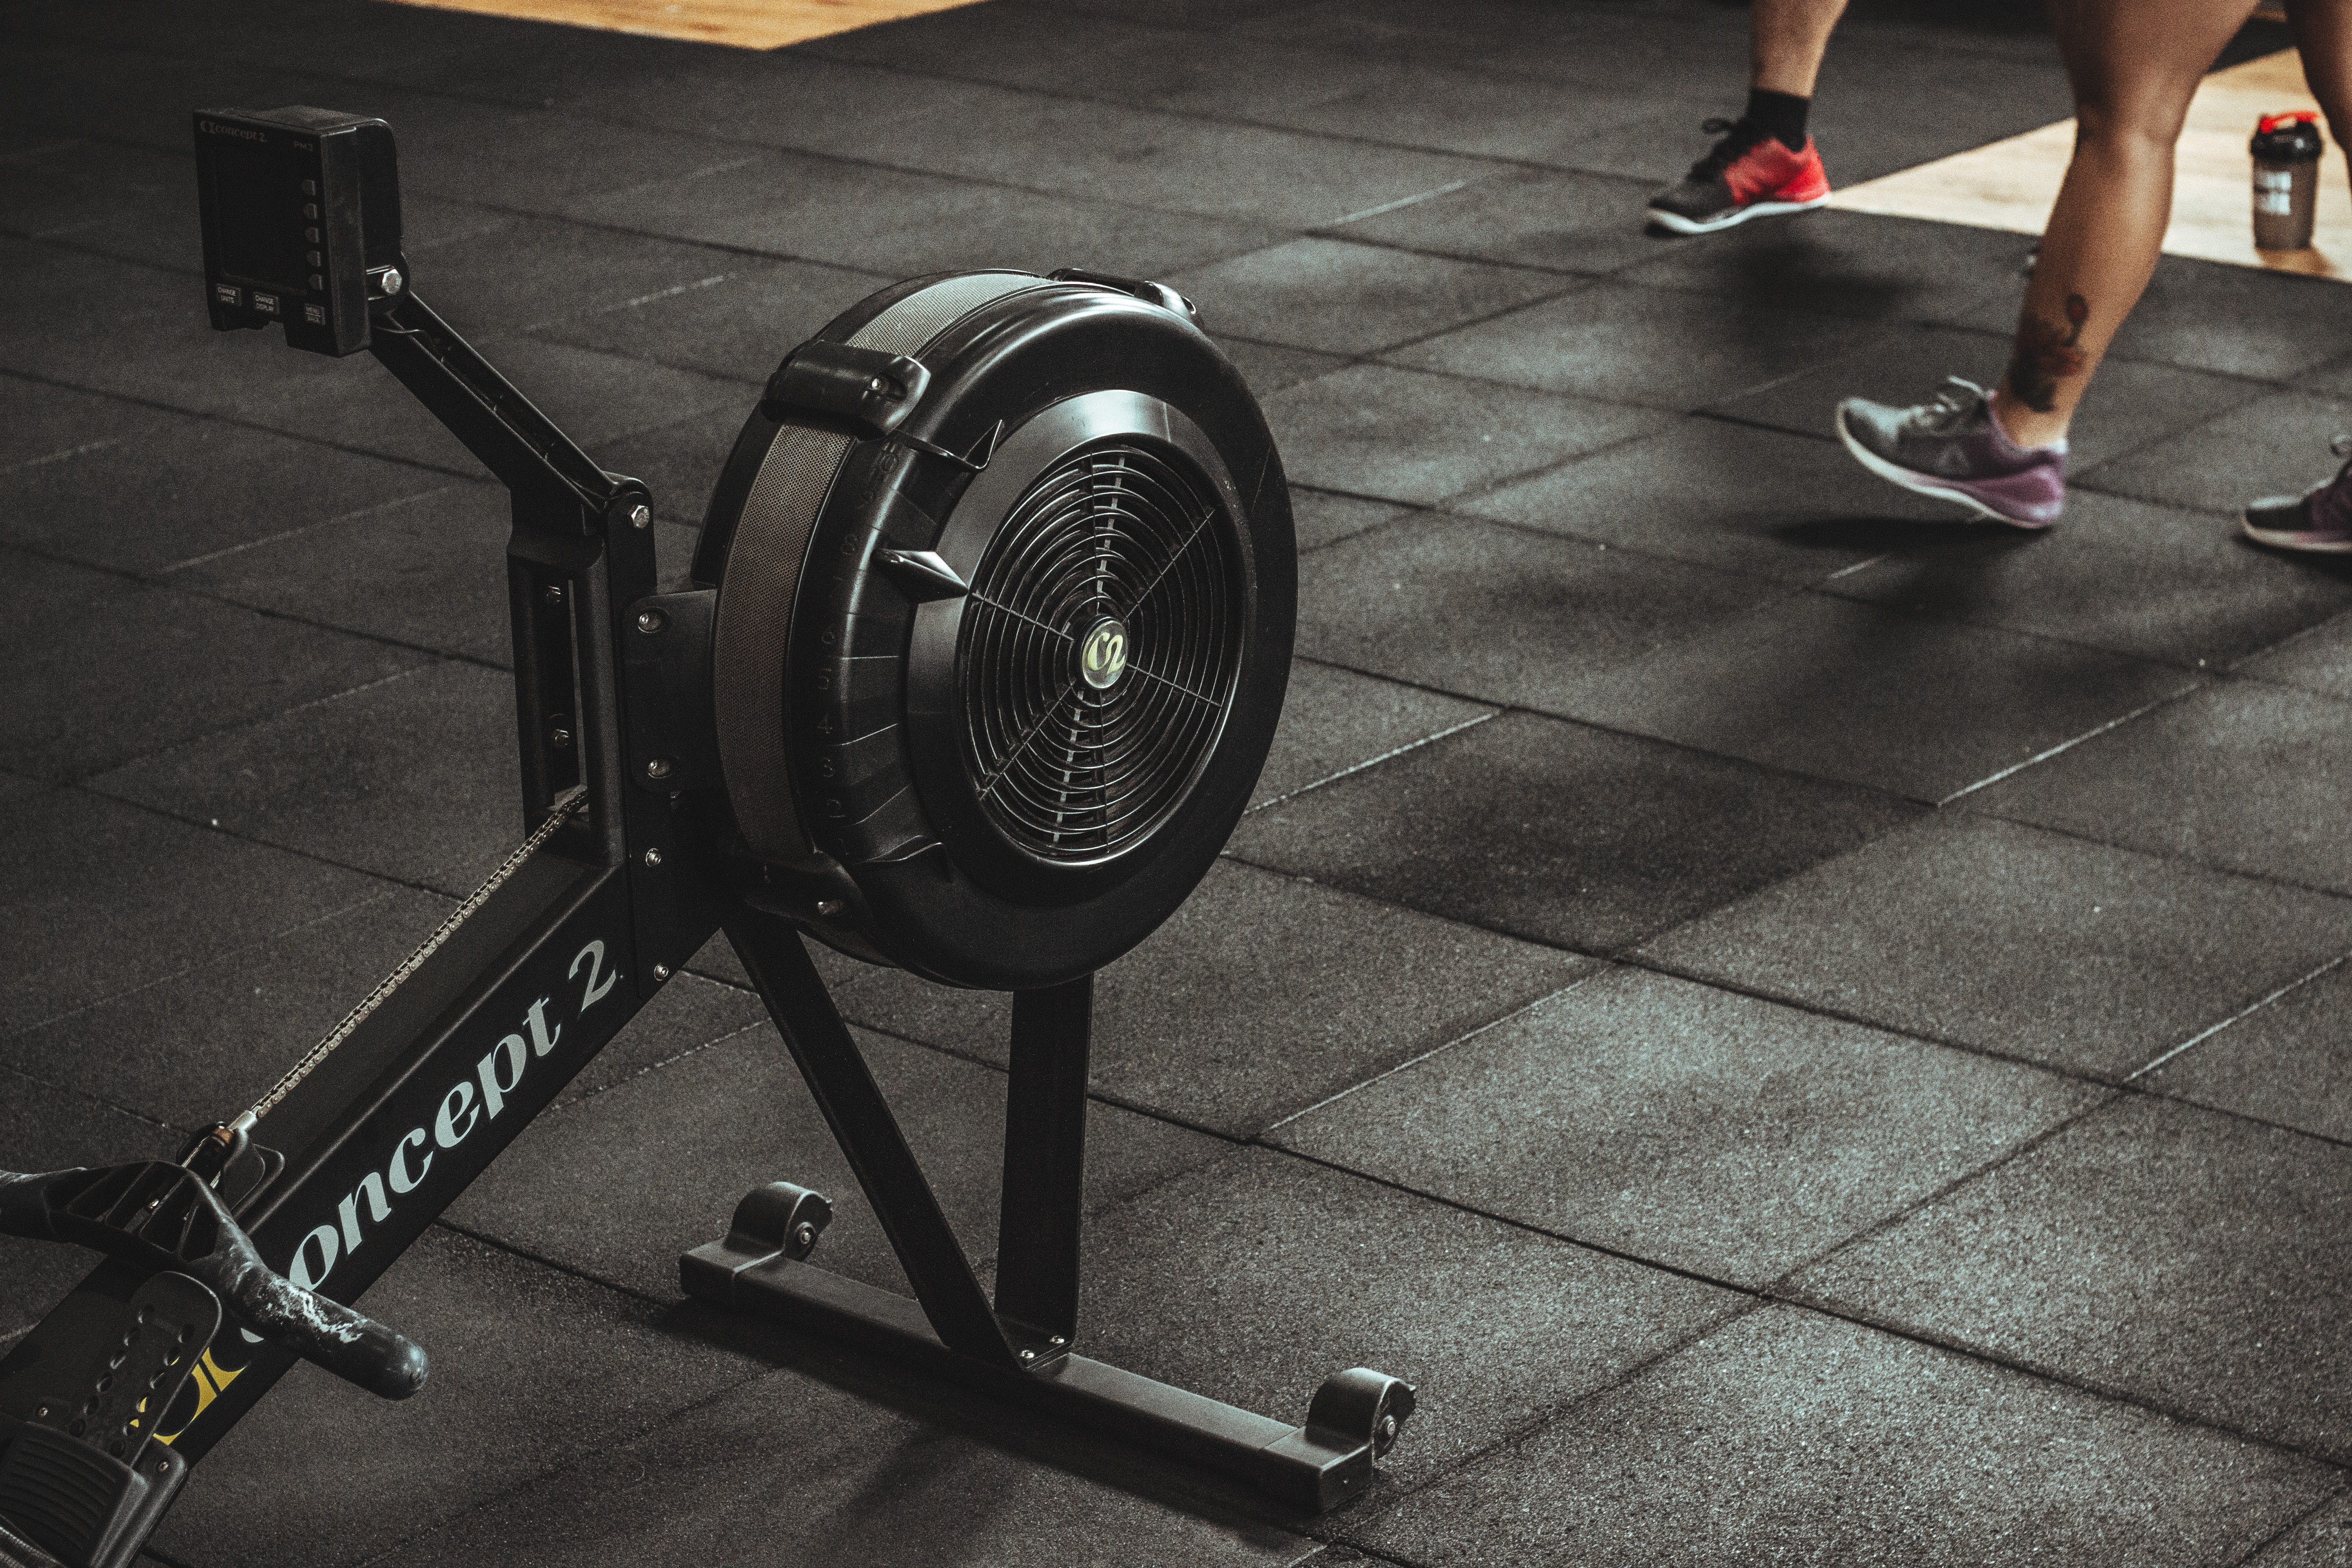 Black Exercise Machine, Equipment, Exercise, Fitness, Indoors, HQ Photo